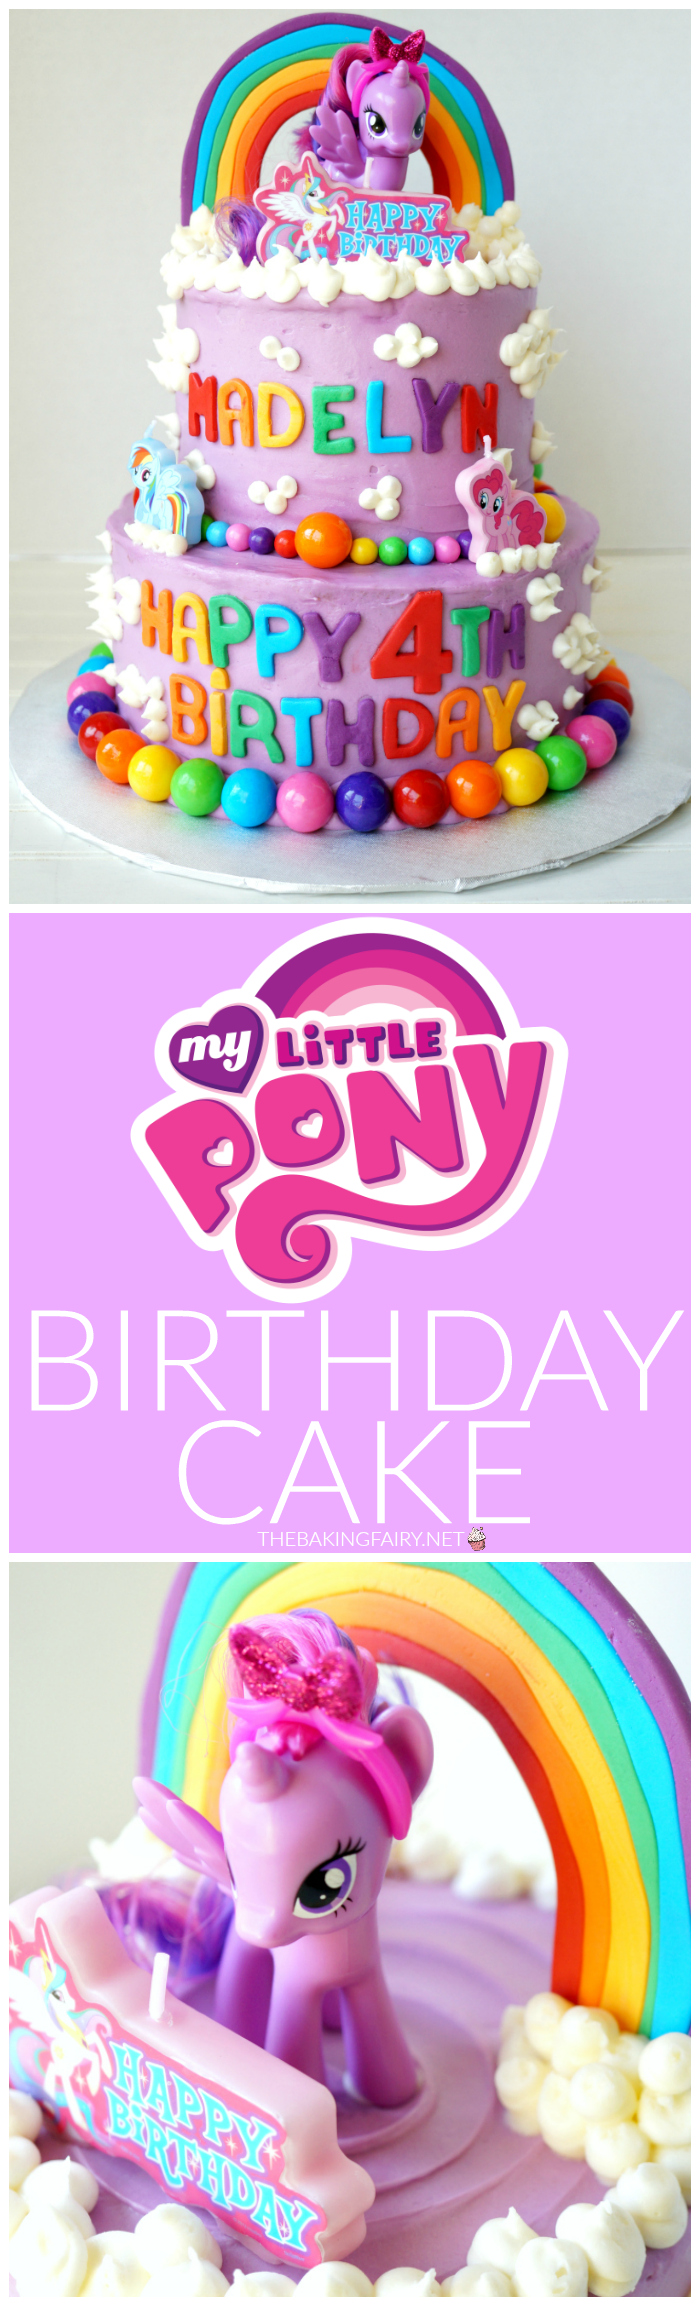 My Little Pony tiered birthday cake | The Baking Fairy